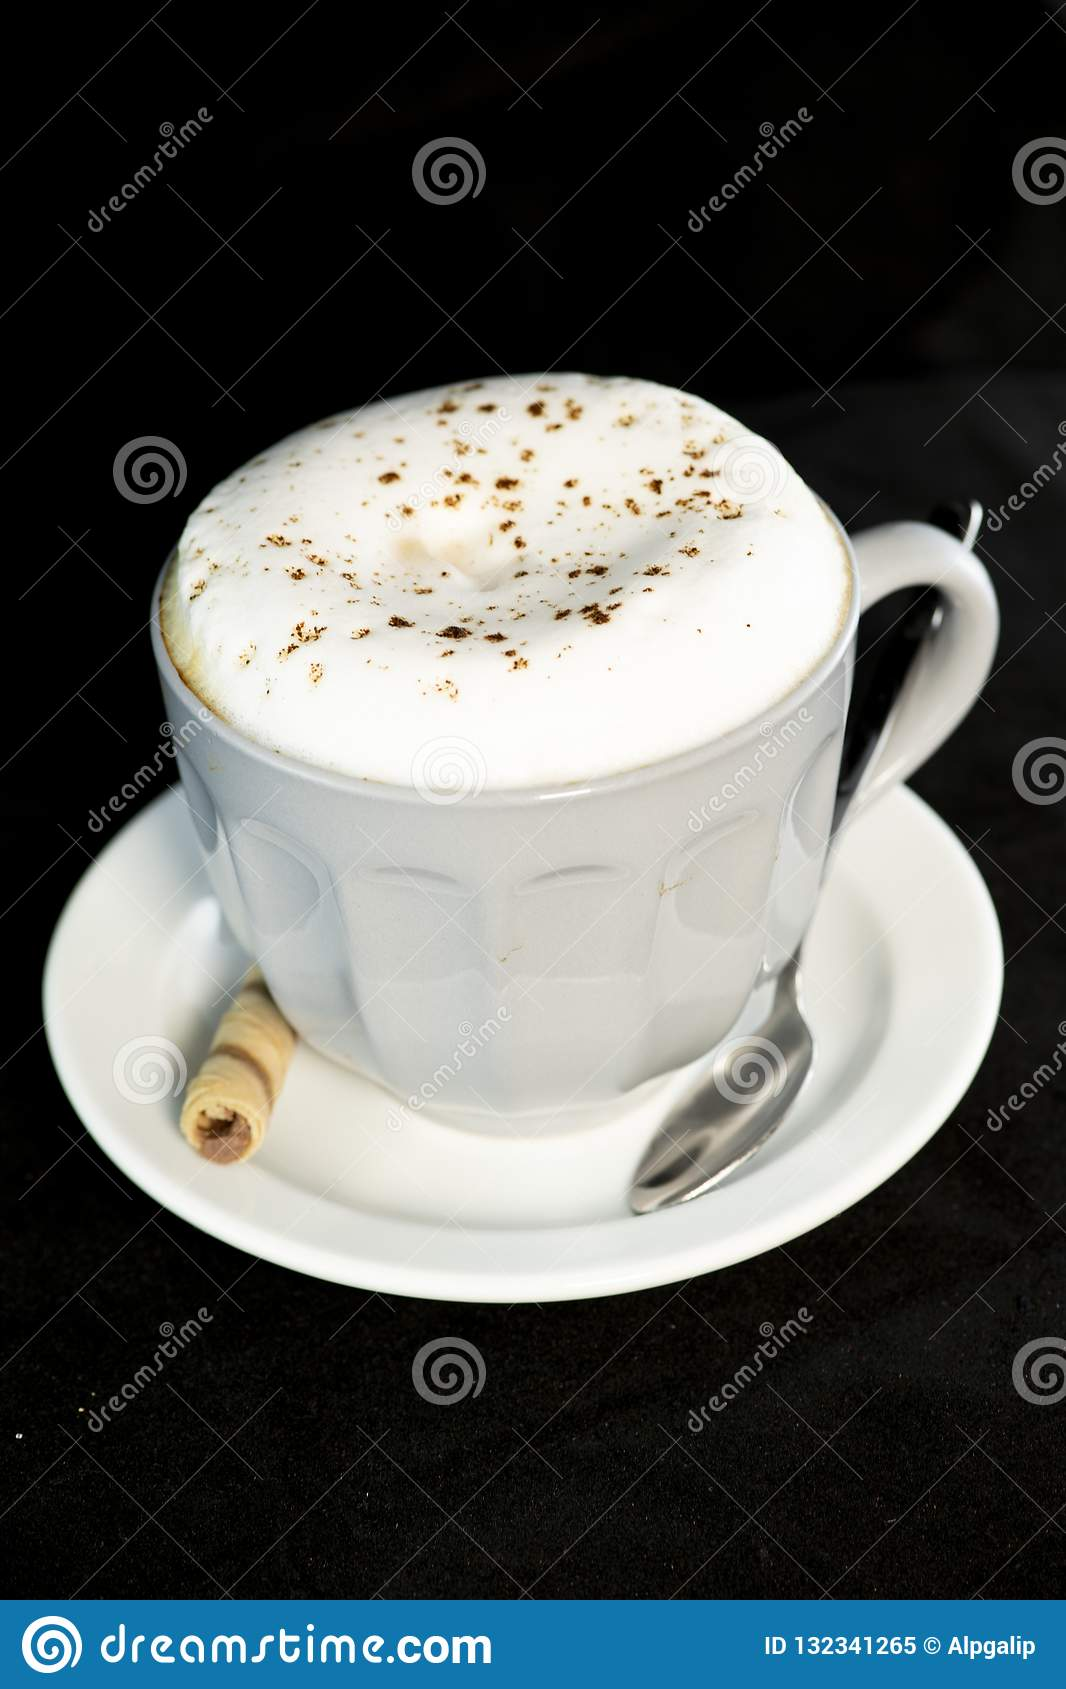 Delicious Cappuccino served with chocolate hazelnut wafer roll